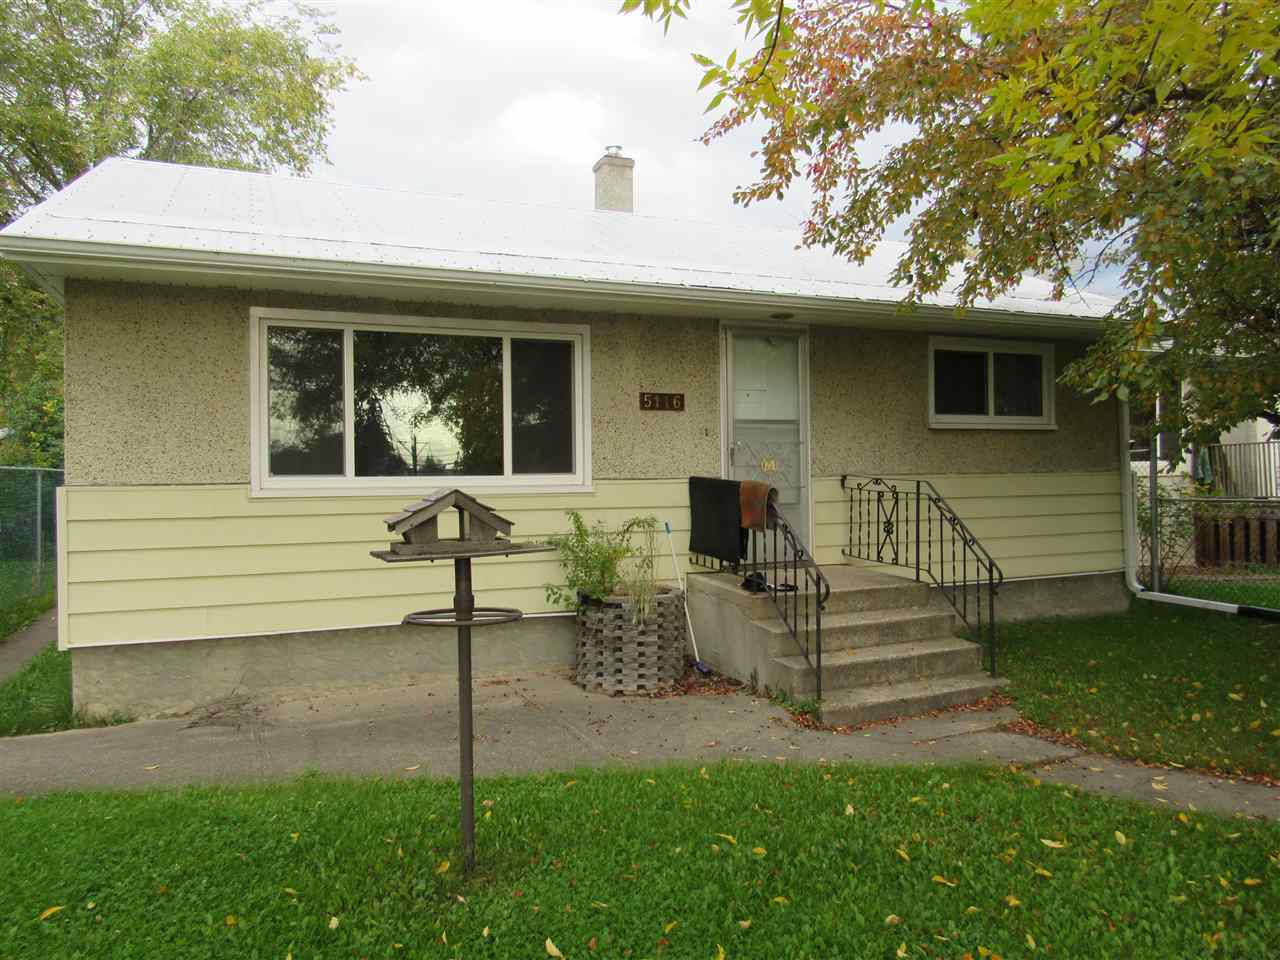 Cozy little 2 bedroom with recent upgrades. New windows as well as flooring and a high efficiency furnace. This could be a great income property or for your 1st home purchase. Close to schools and downtown...